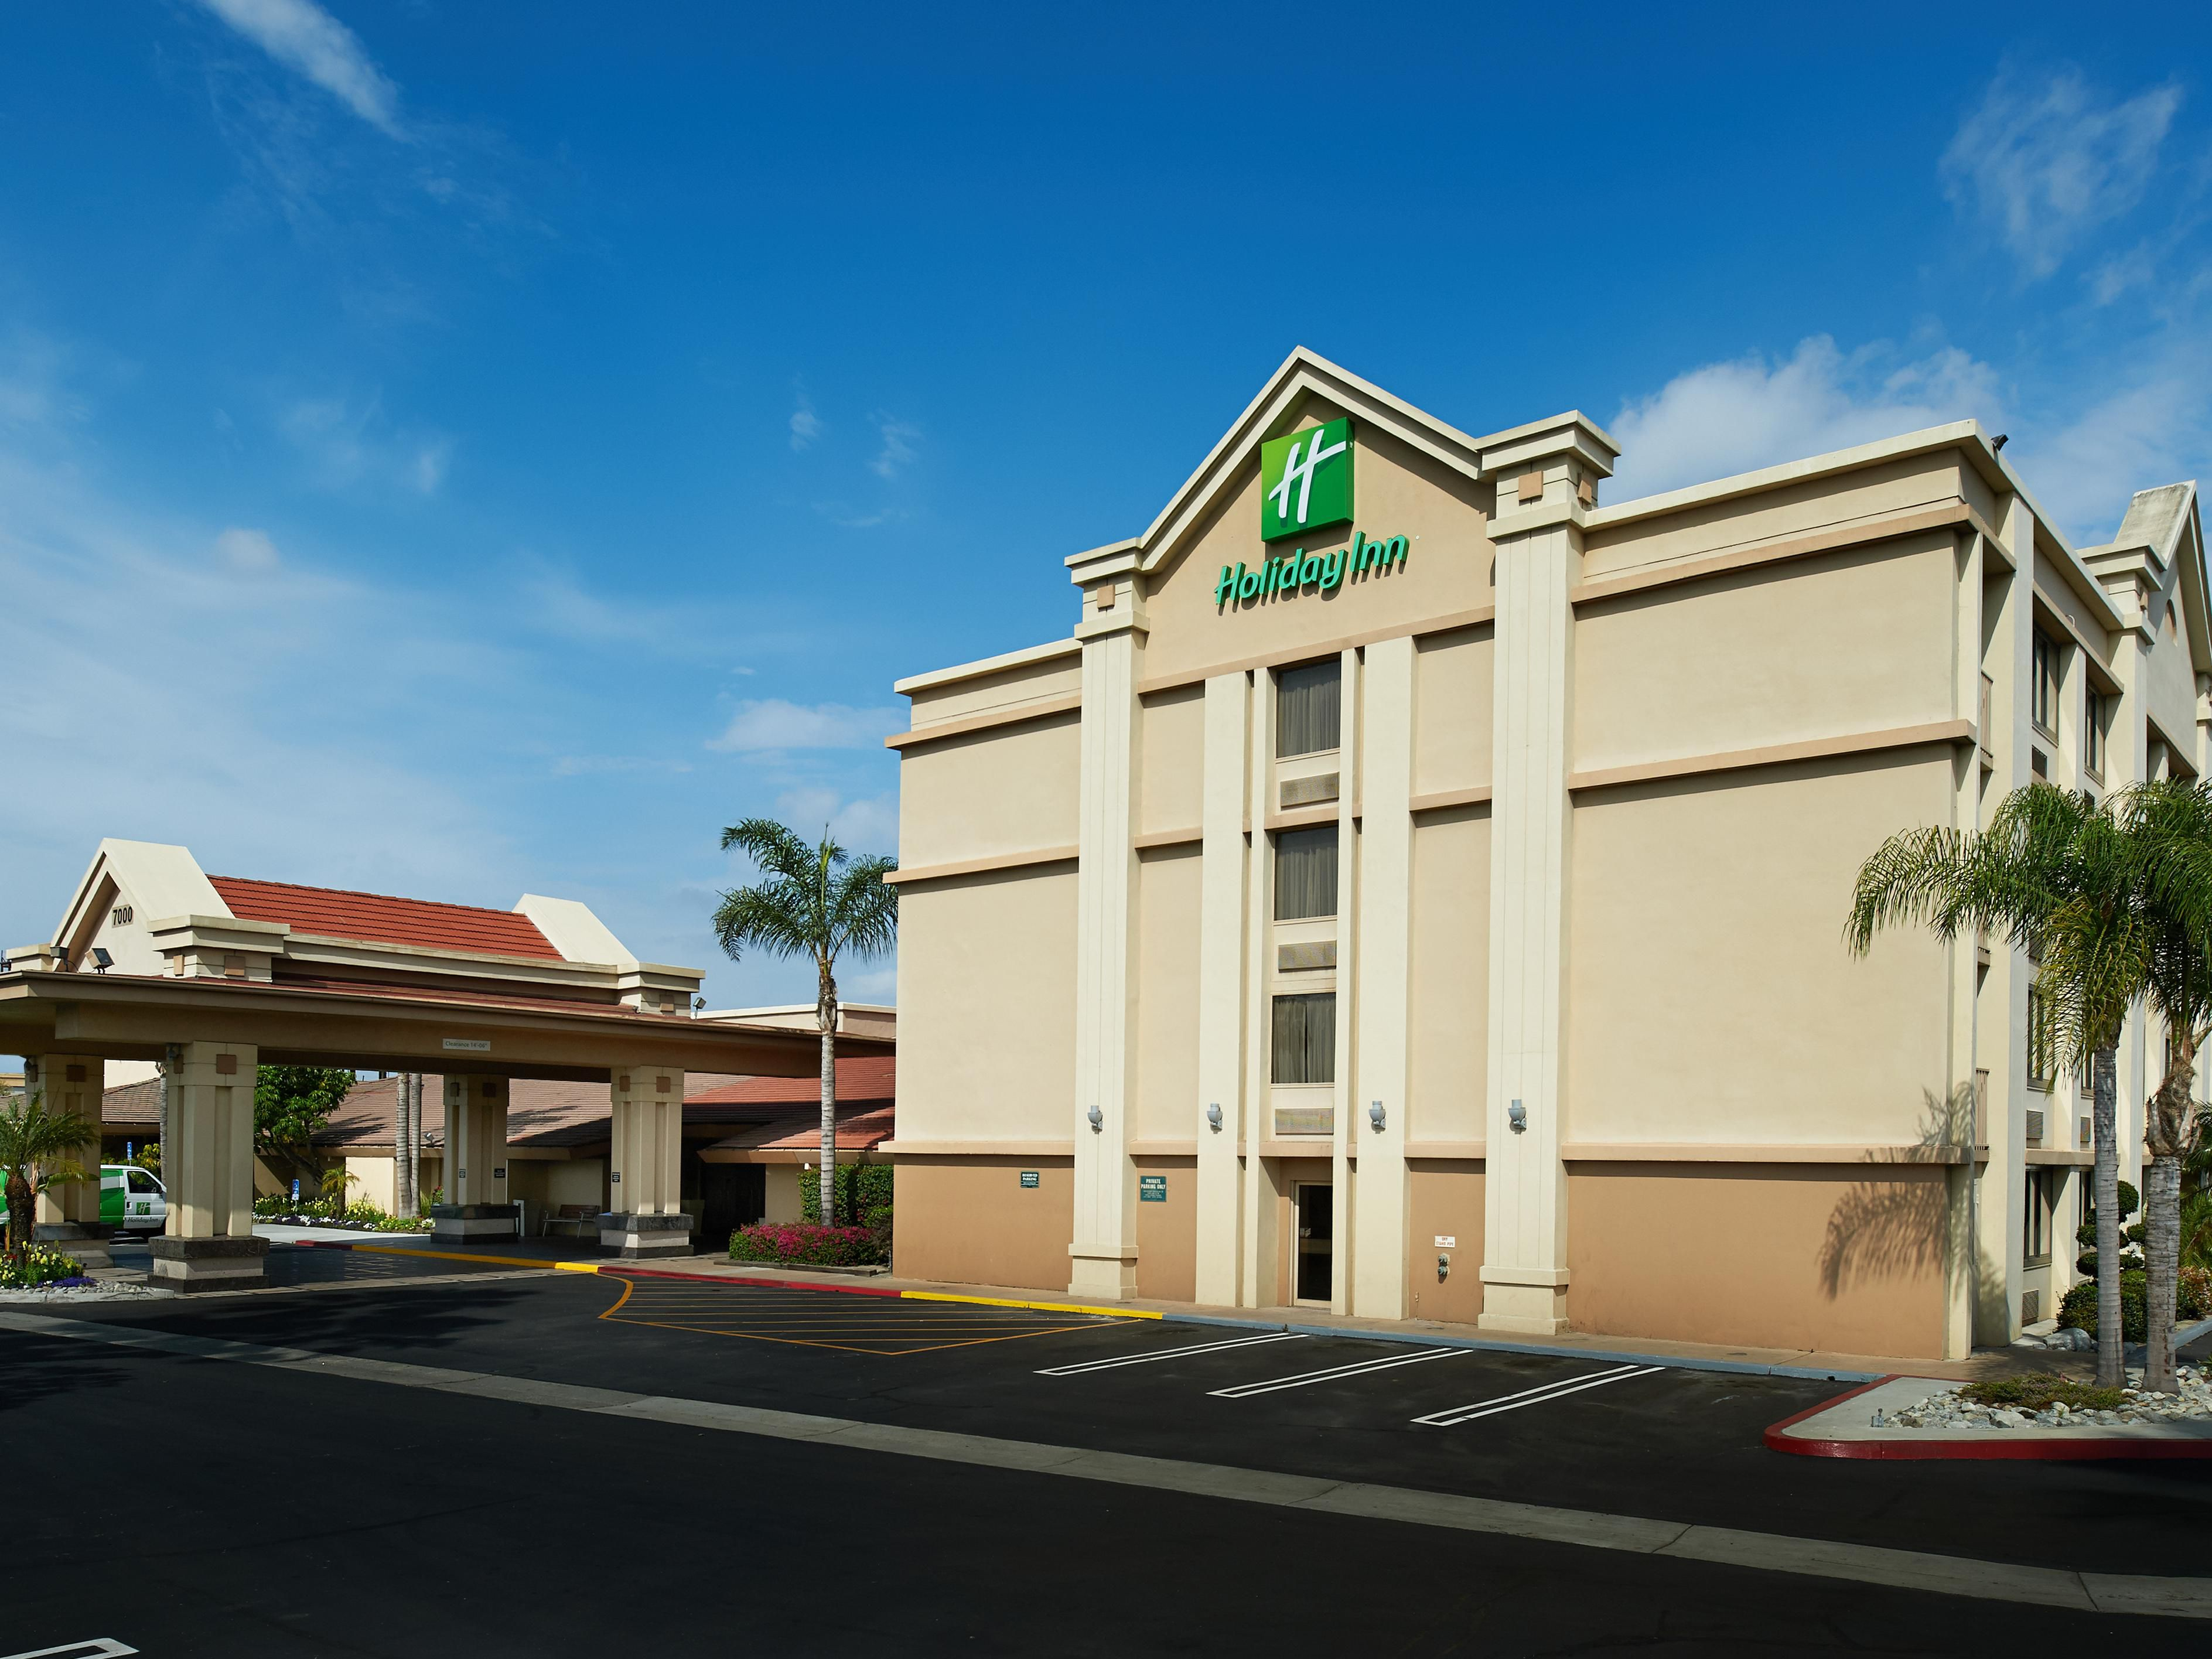 Holiday Inn Buena Park located on Beach Blvd